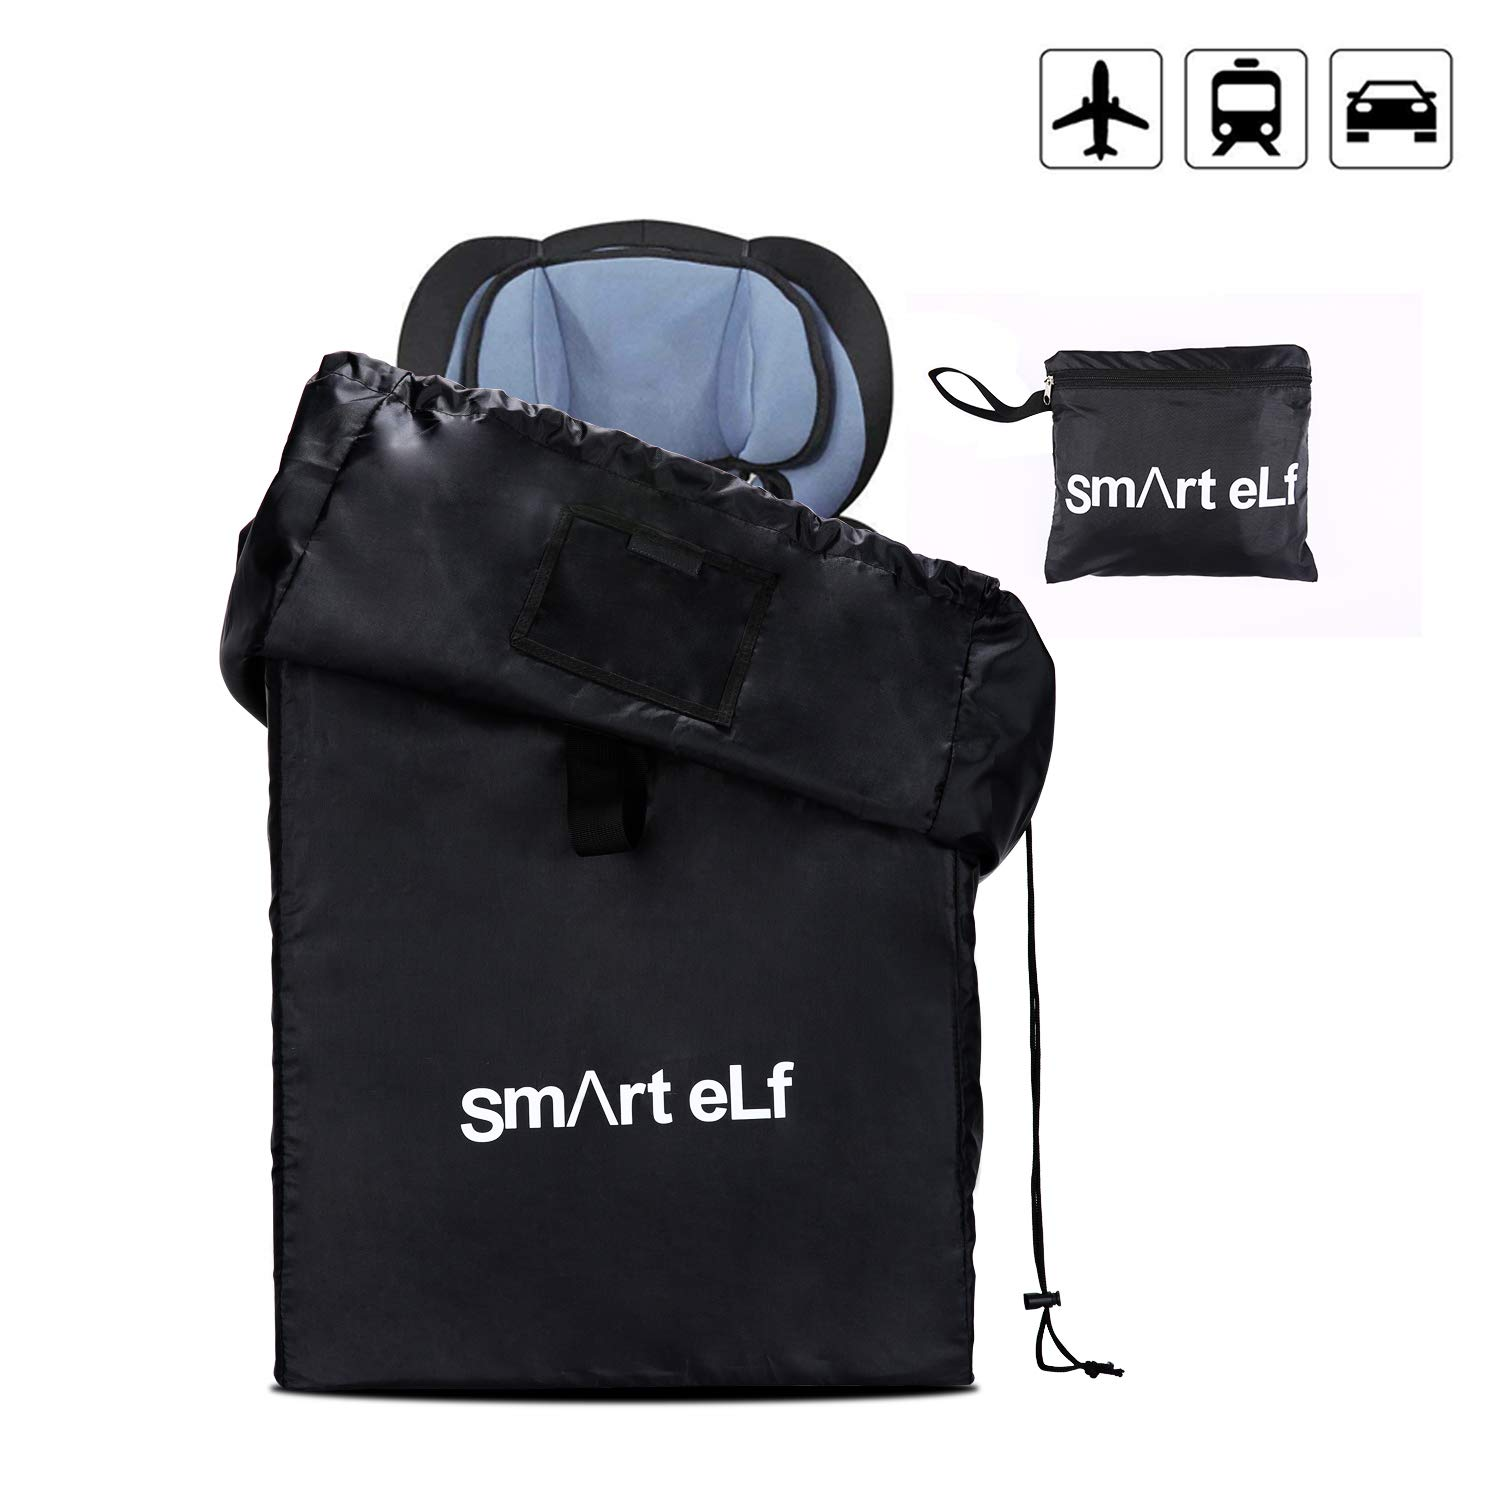 Smart elf Car Seat Travel Bag, Universal Waterproof Size Car Seat Cover Gate Check Drawstring Backpack Bag with Shoulder Straps for Stroller, Car Seats, Boosters and Infant Carriers by Smart elf